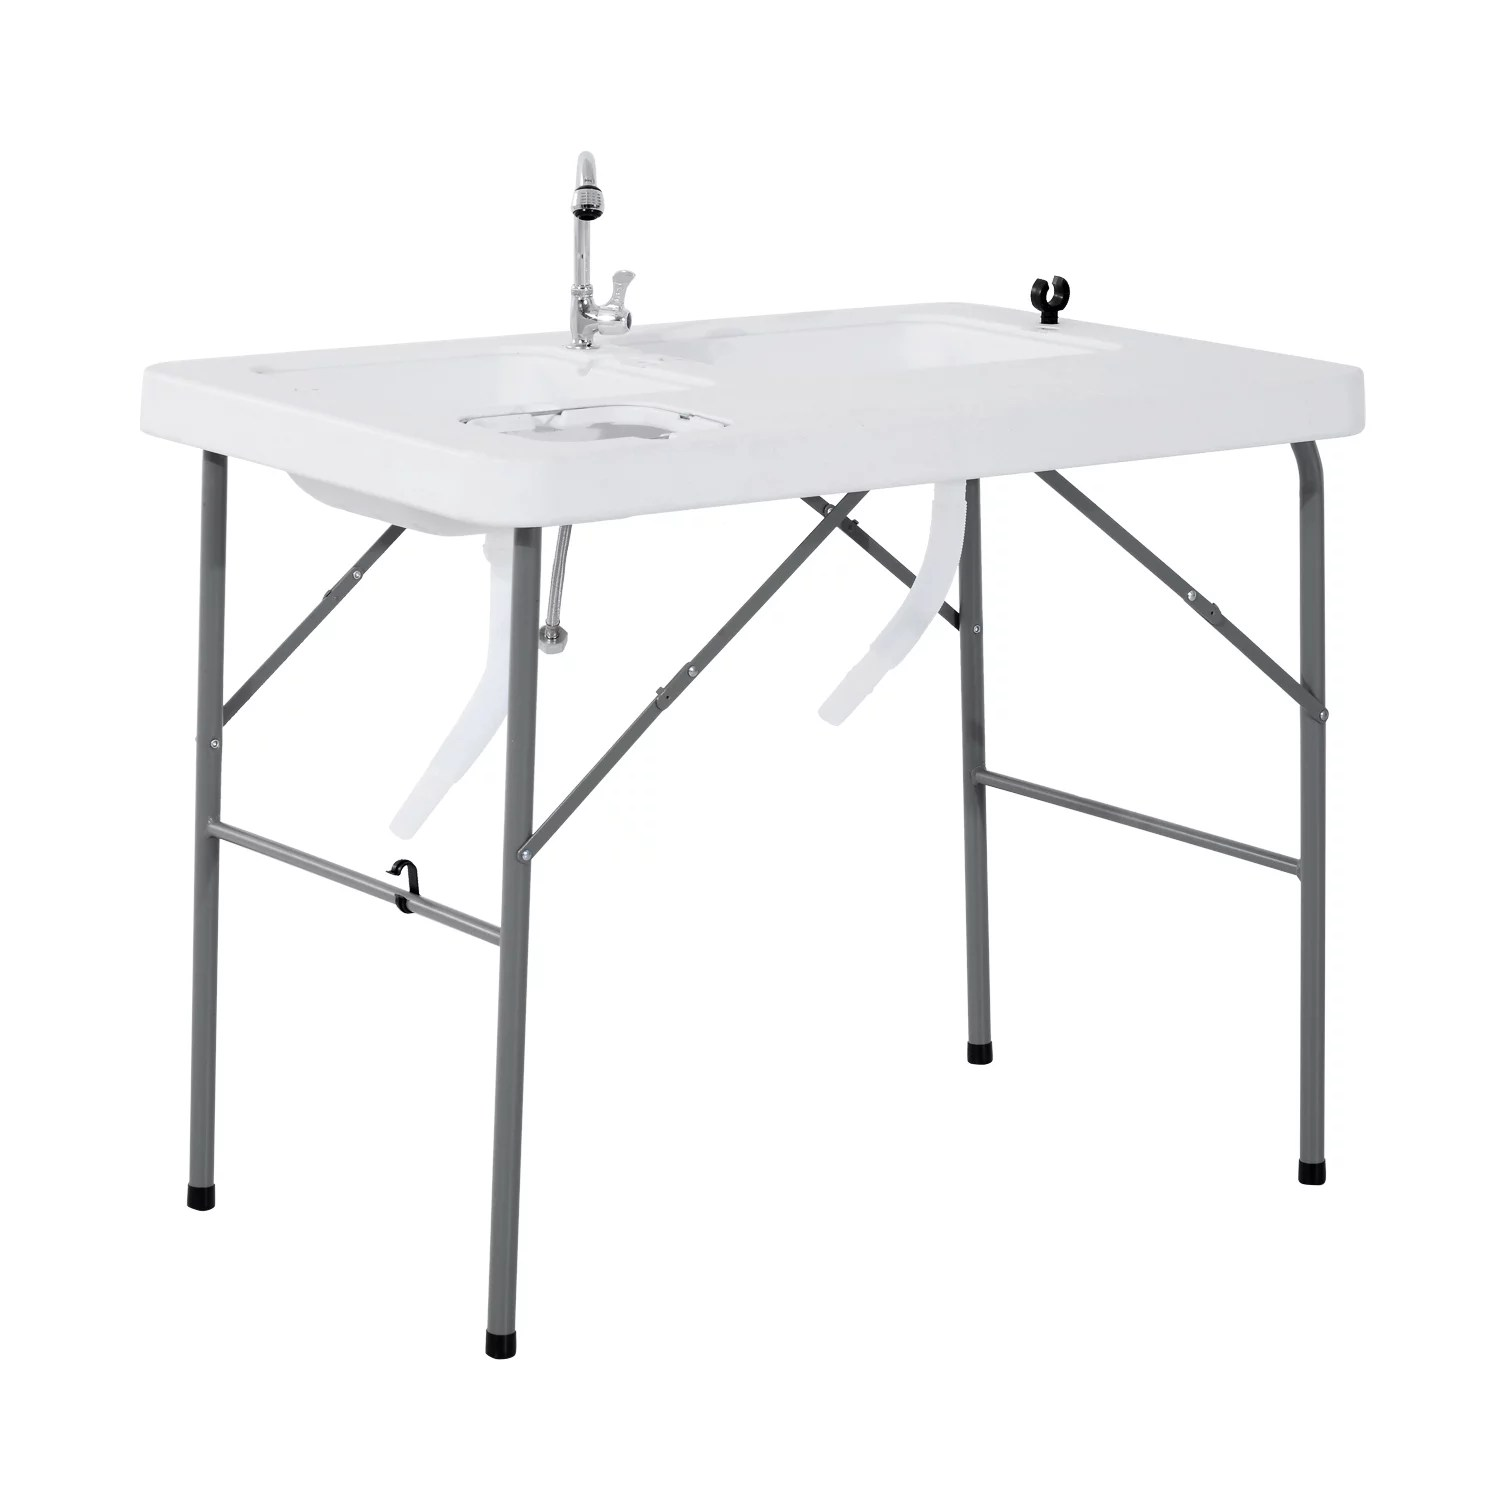 Outsunny Portable Folding Camping Sink Table With Faucet And Dual Water Basins Outdoor Fish Table Sink 40 Walmart Com Walmart Com